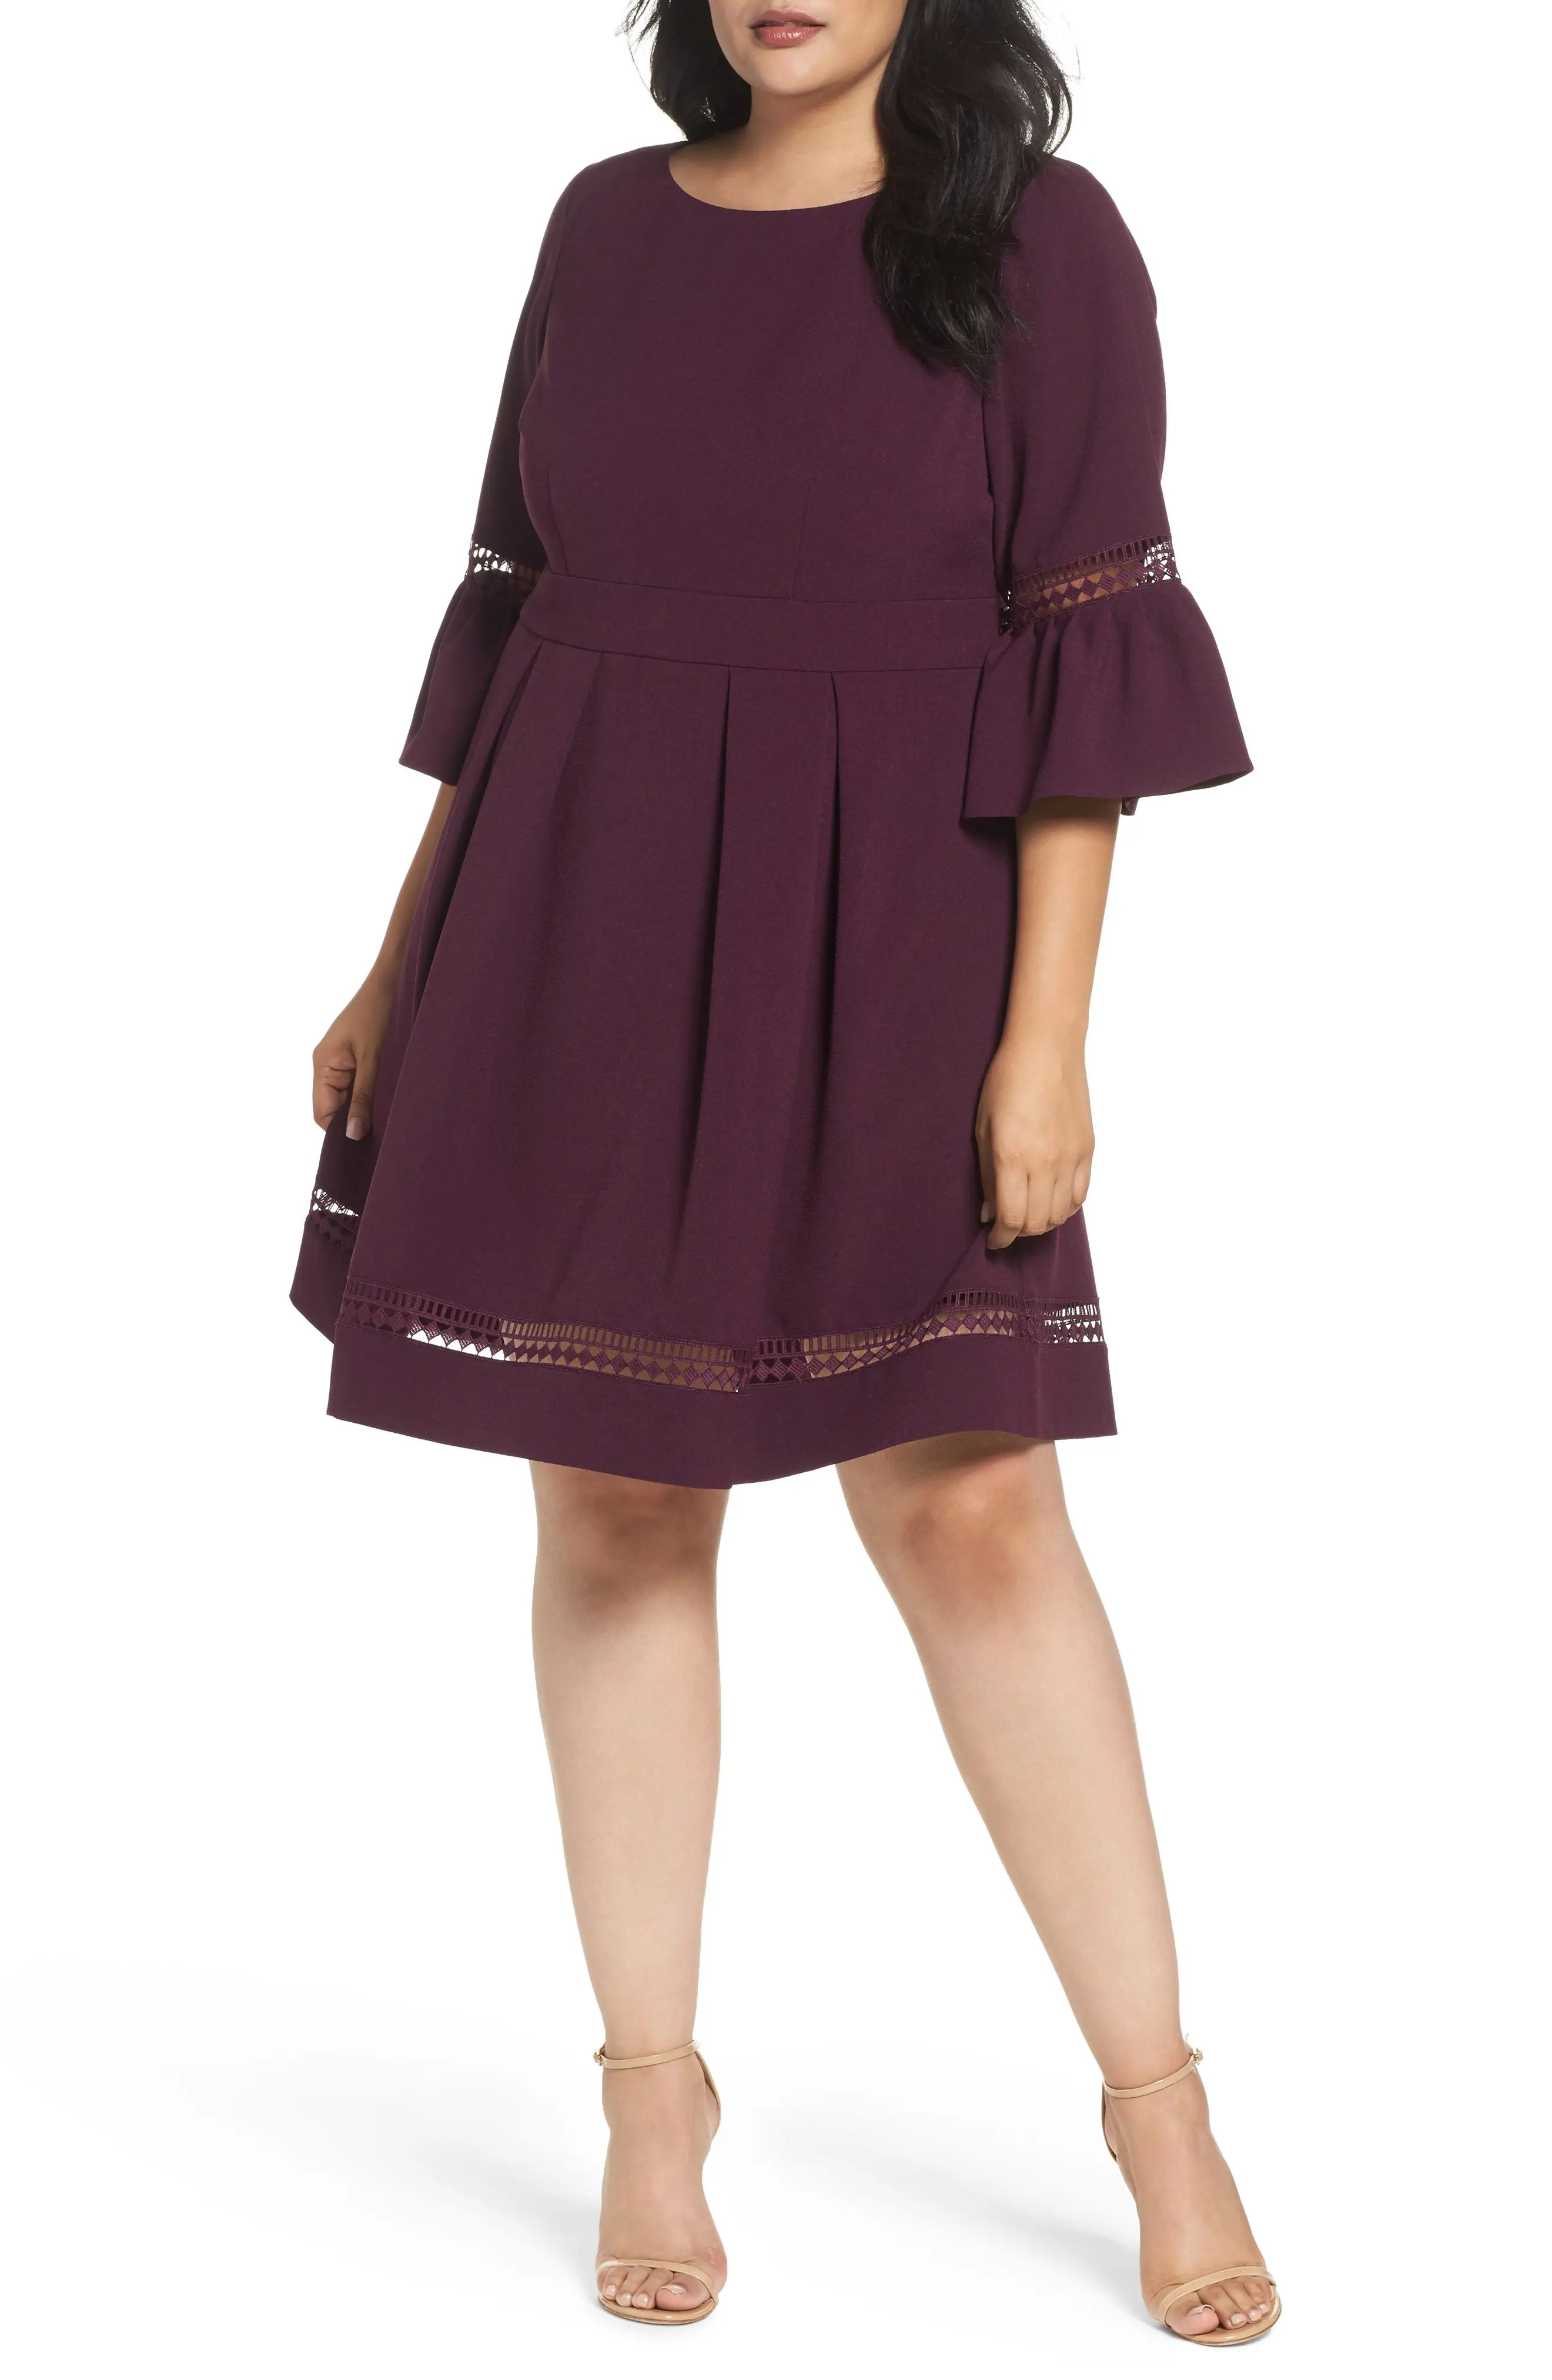 Eliza  bell sleeve fit  flare dress plus size also clothing for women nordstrom rh shoprdstrom